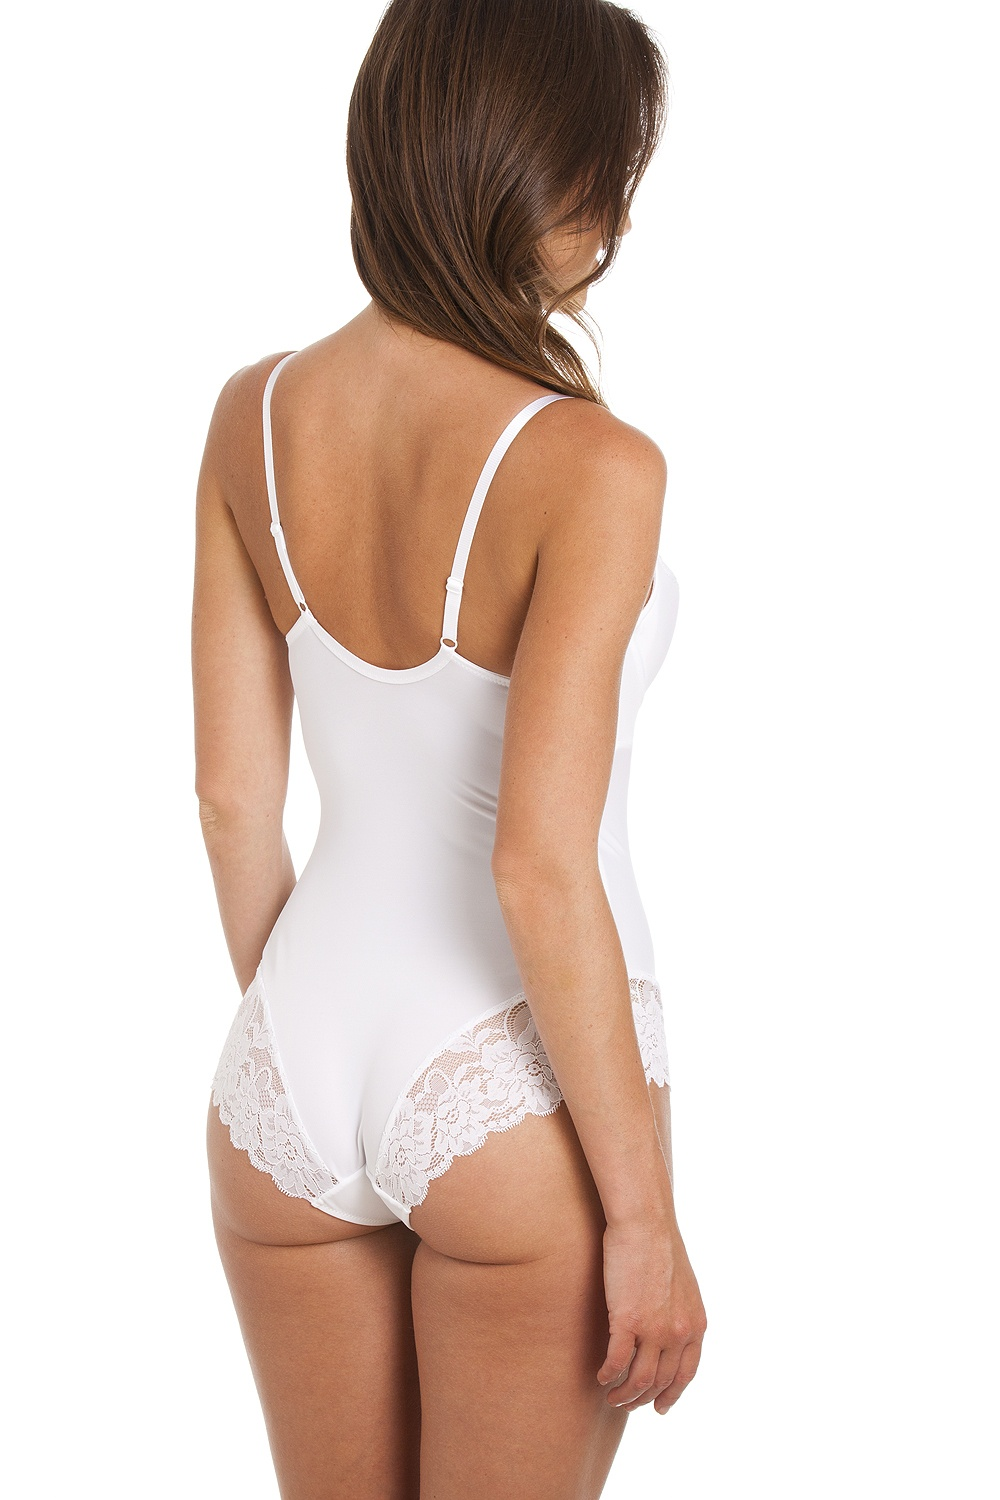 White Lace Sexy Shapewear Support Body